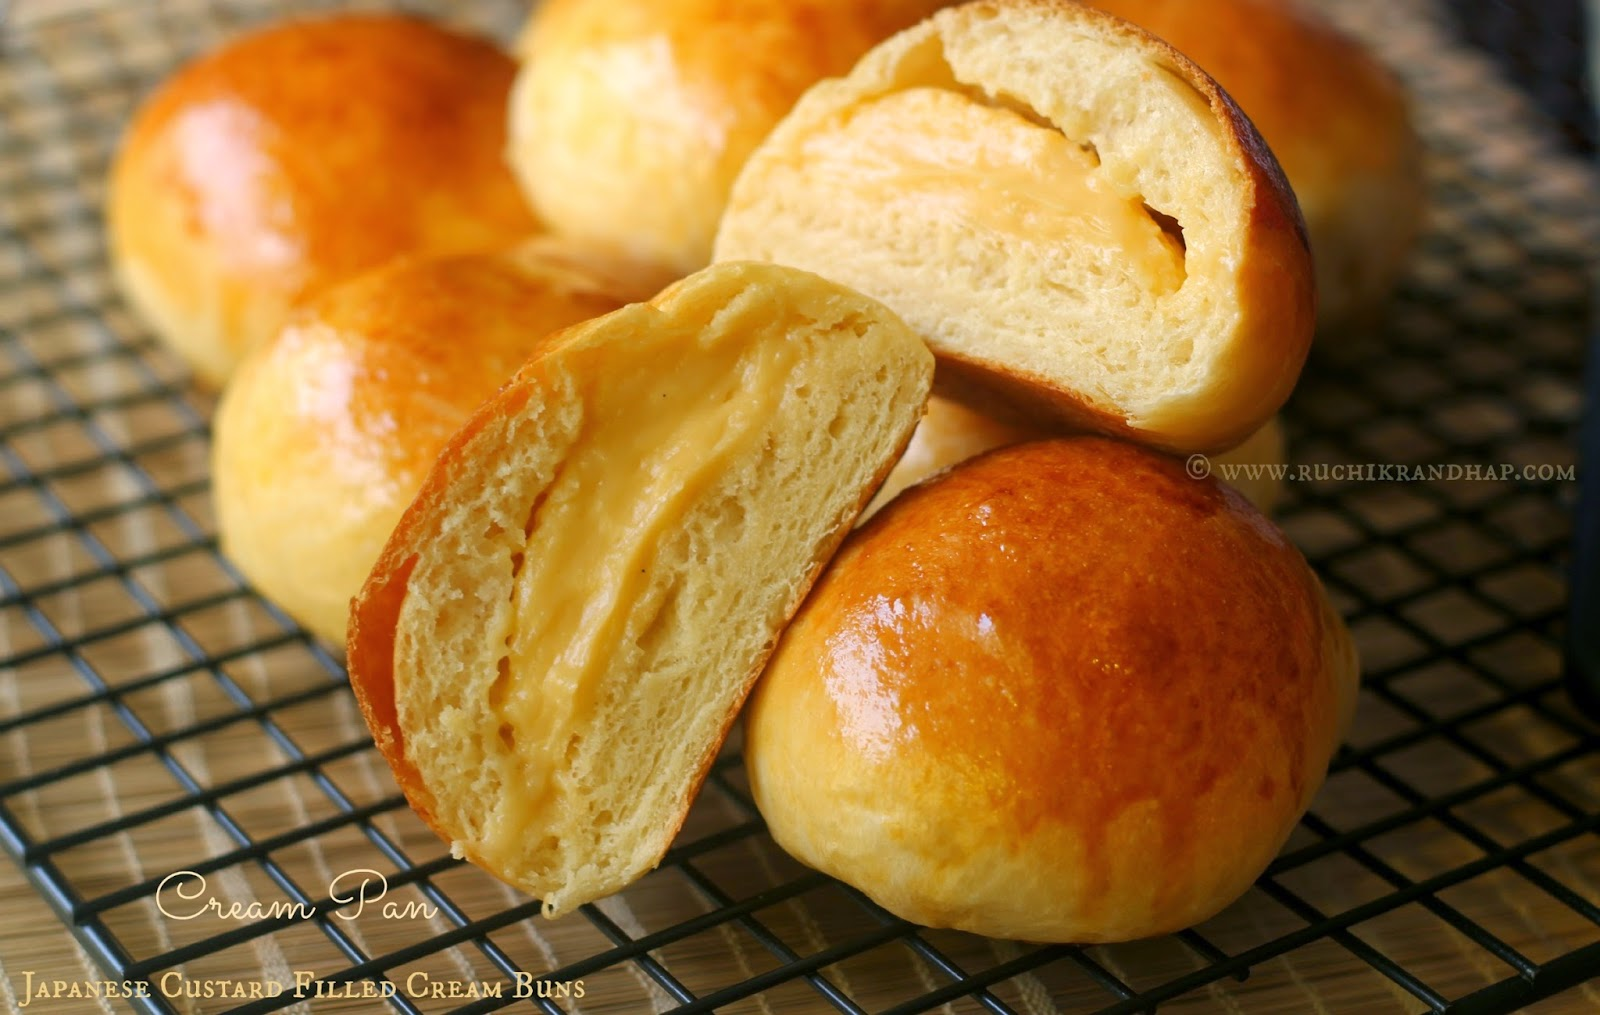 Soft pillowy bread rolls made using a special Japanese technique